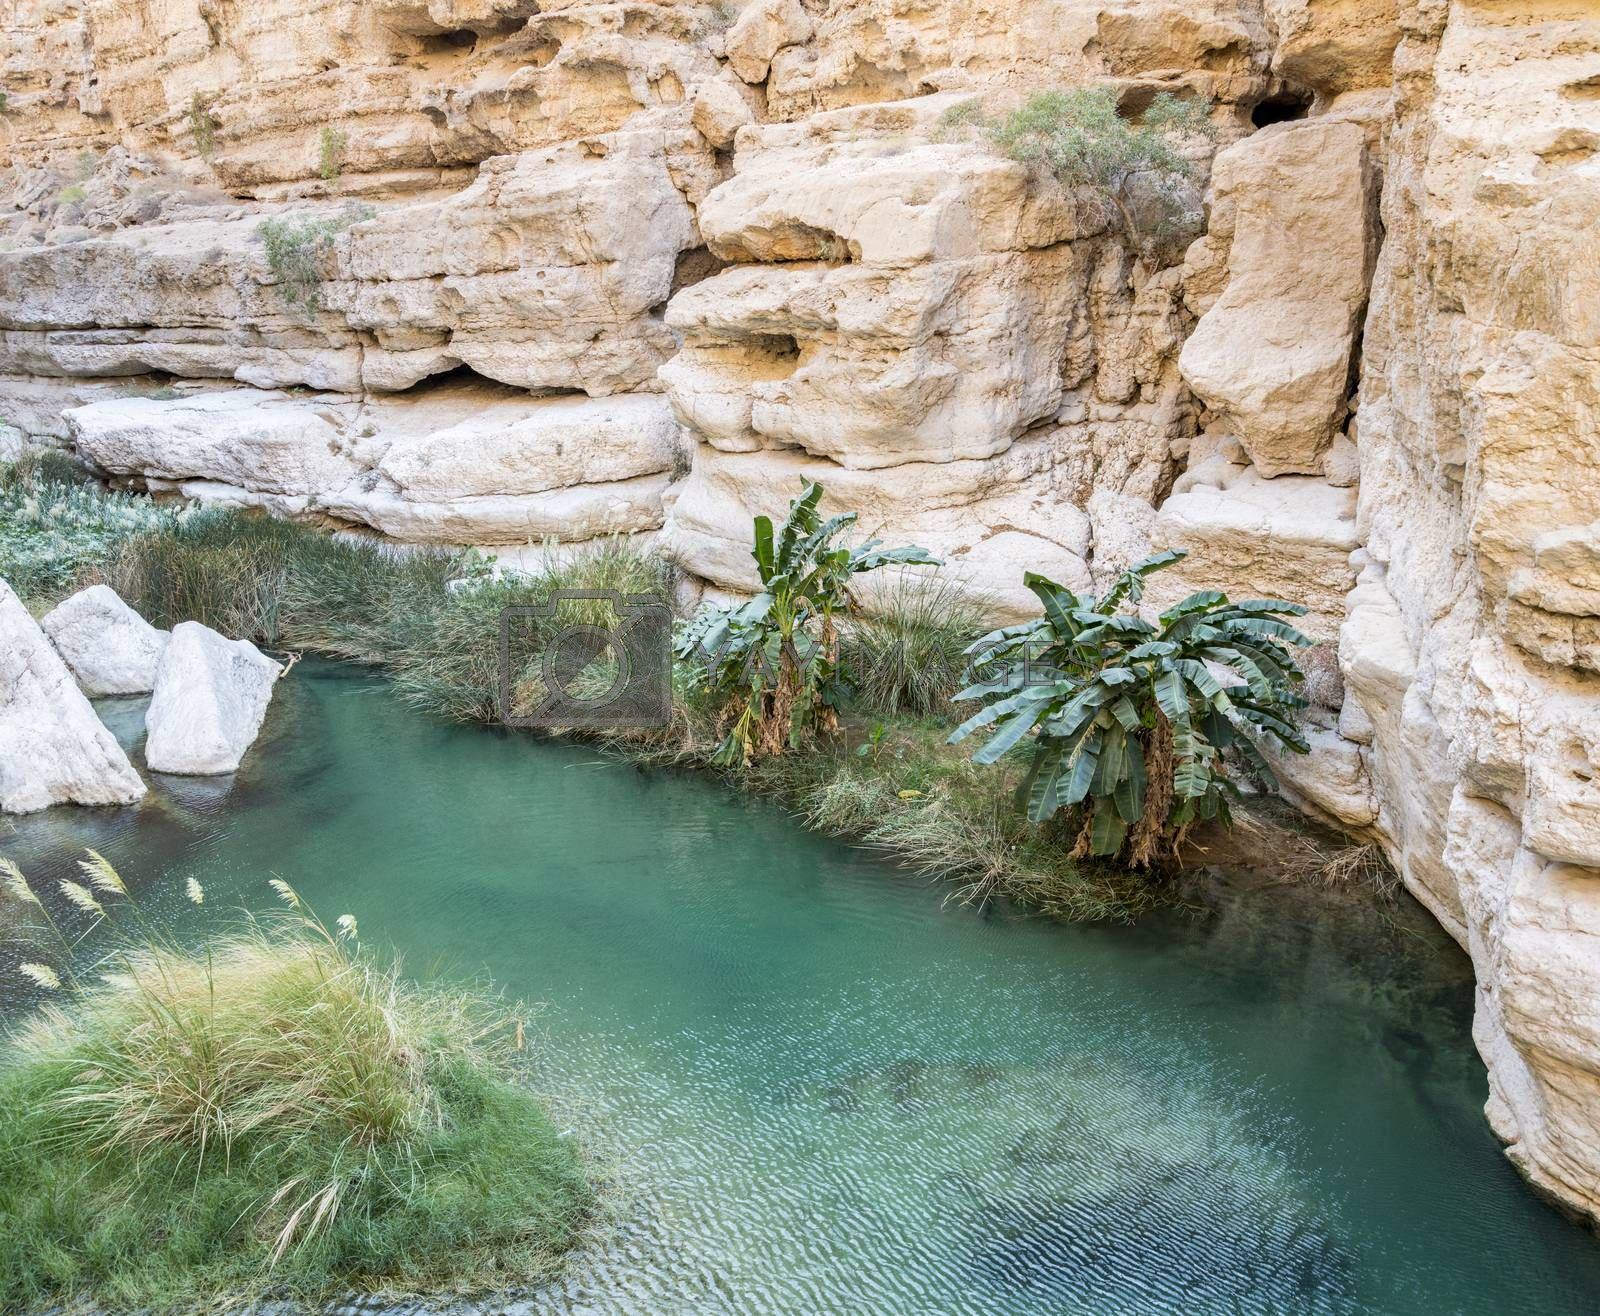 One natural pool in the canyon of the famous and touristic Wadi Shab, Tiwi, Sultanate of Oman, Middle East